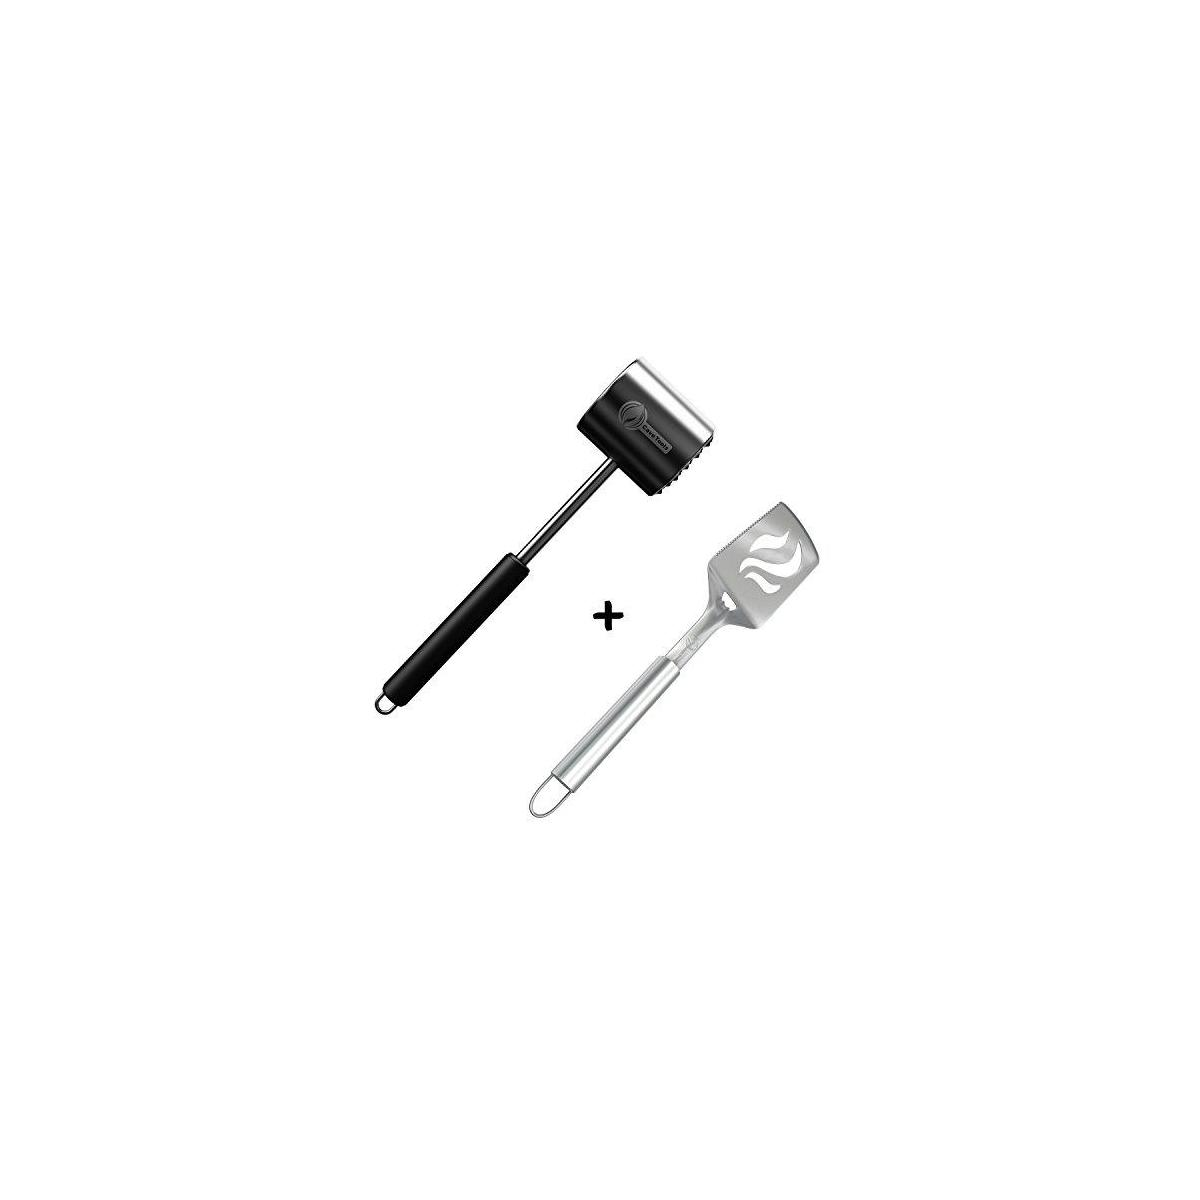 BBQ Spatula + Meat Tenderizer Mallet Tool - Dishwasher Safe Manual Hammer Pounder for Tenderizing Chicken Steak Pork & Veal - Non Slip Silicone Handle for Pounding